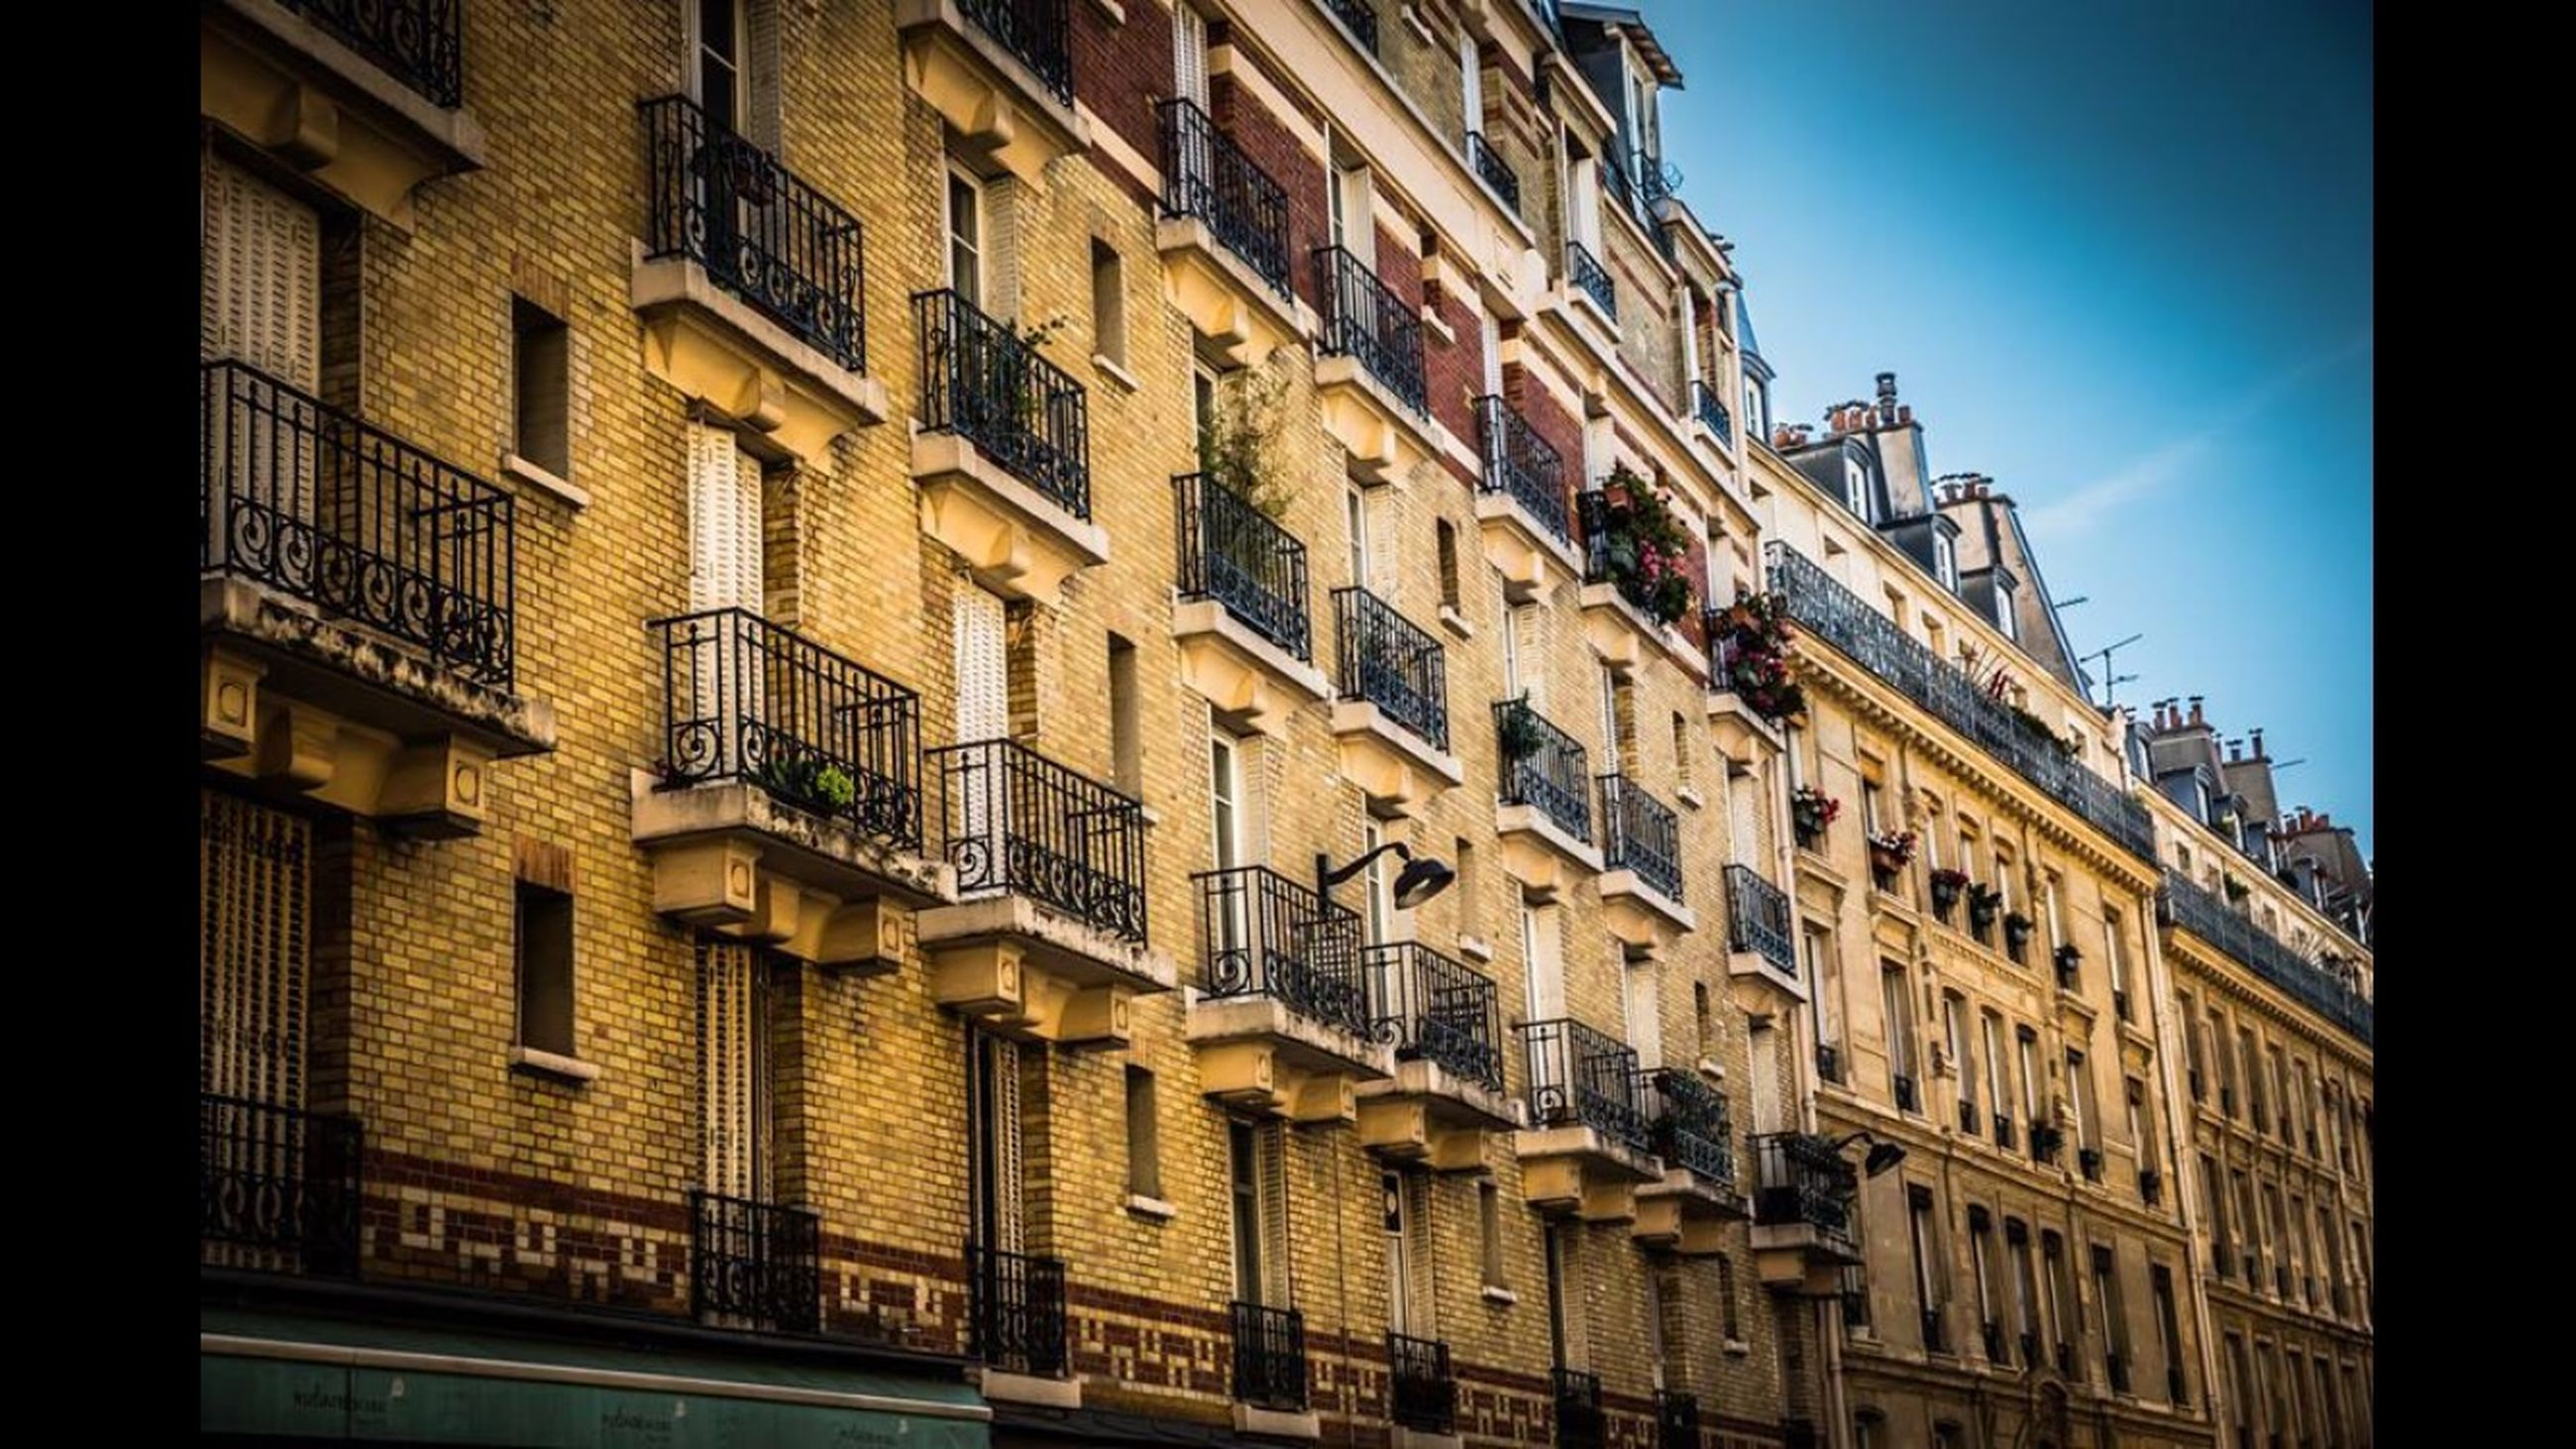 architecture, building exterior, built structure, low angle view, window, building, city, residential building, clear sky, balcony, residential structure, in a row, apartment, no people, outdoors, day, city life, repetition, facade, sky